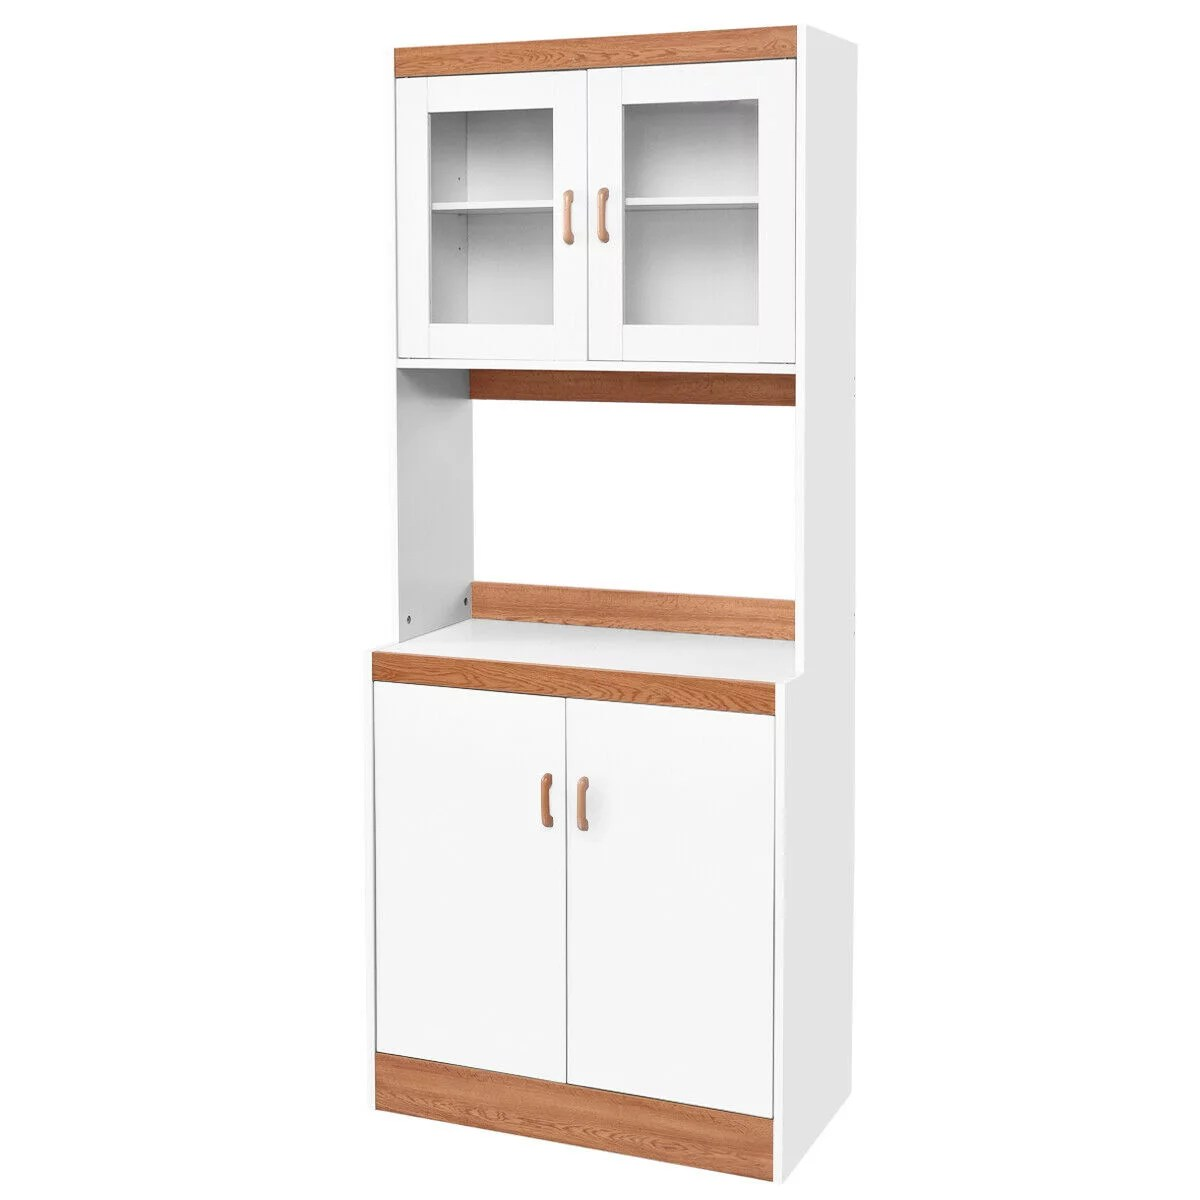 gymax tall microwave cart stand kitchen storage cabinet shelves pantry cupboard white